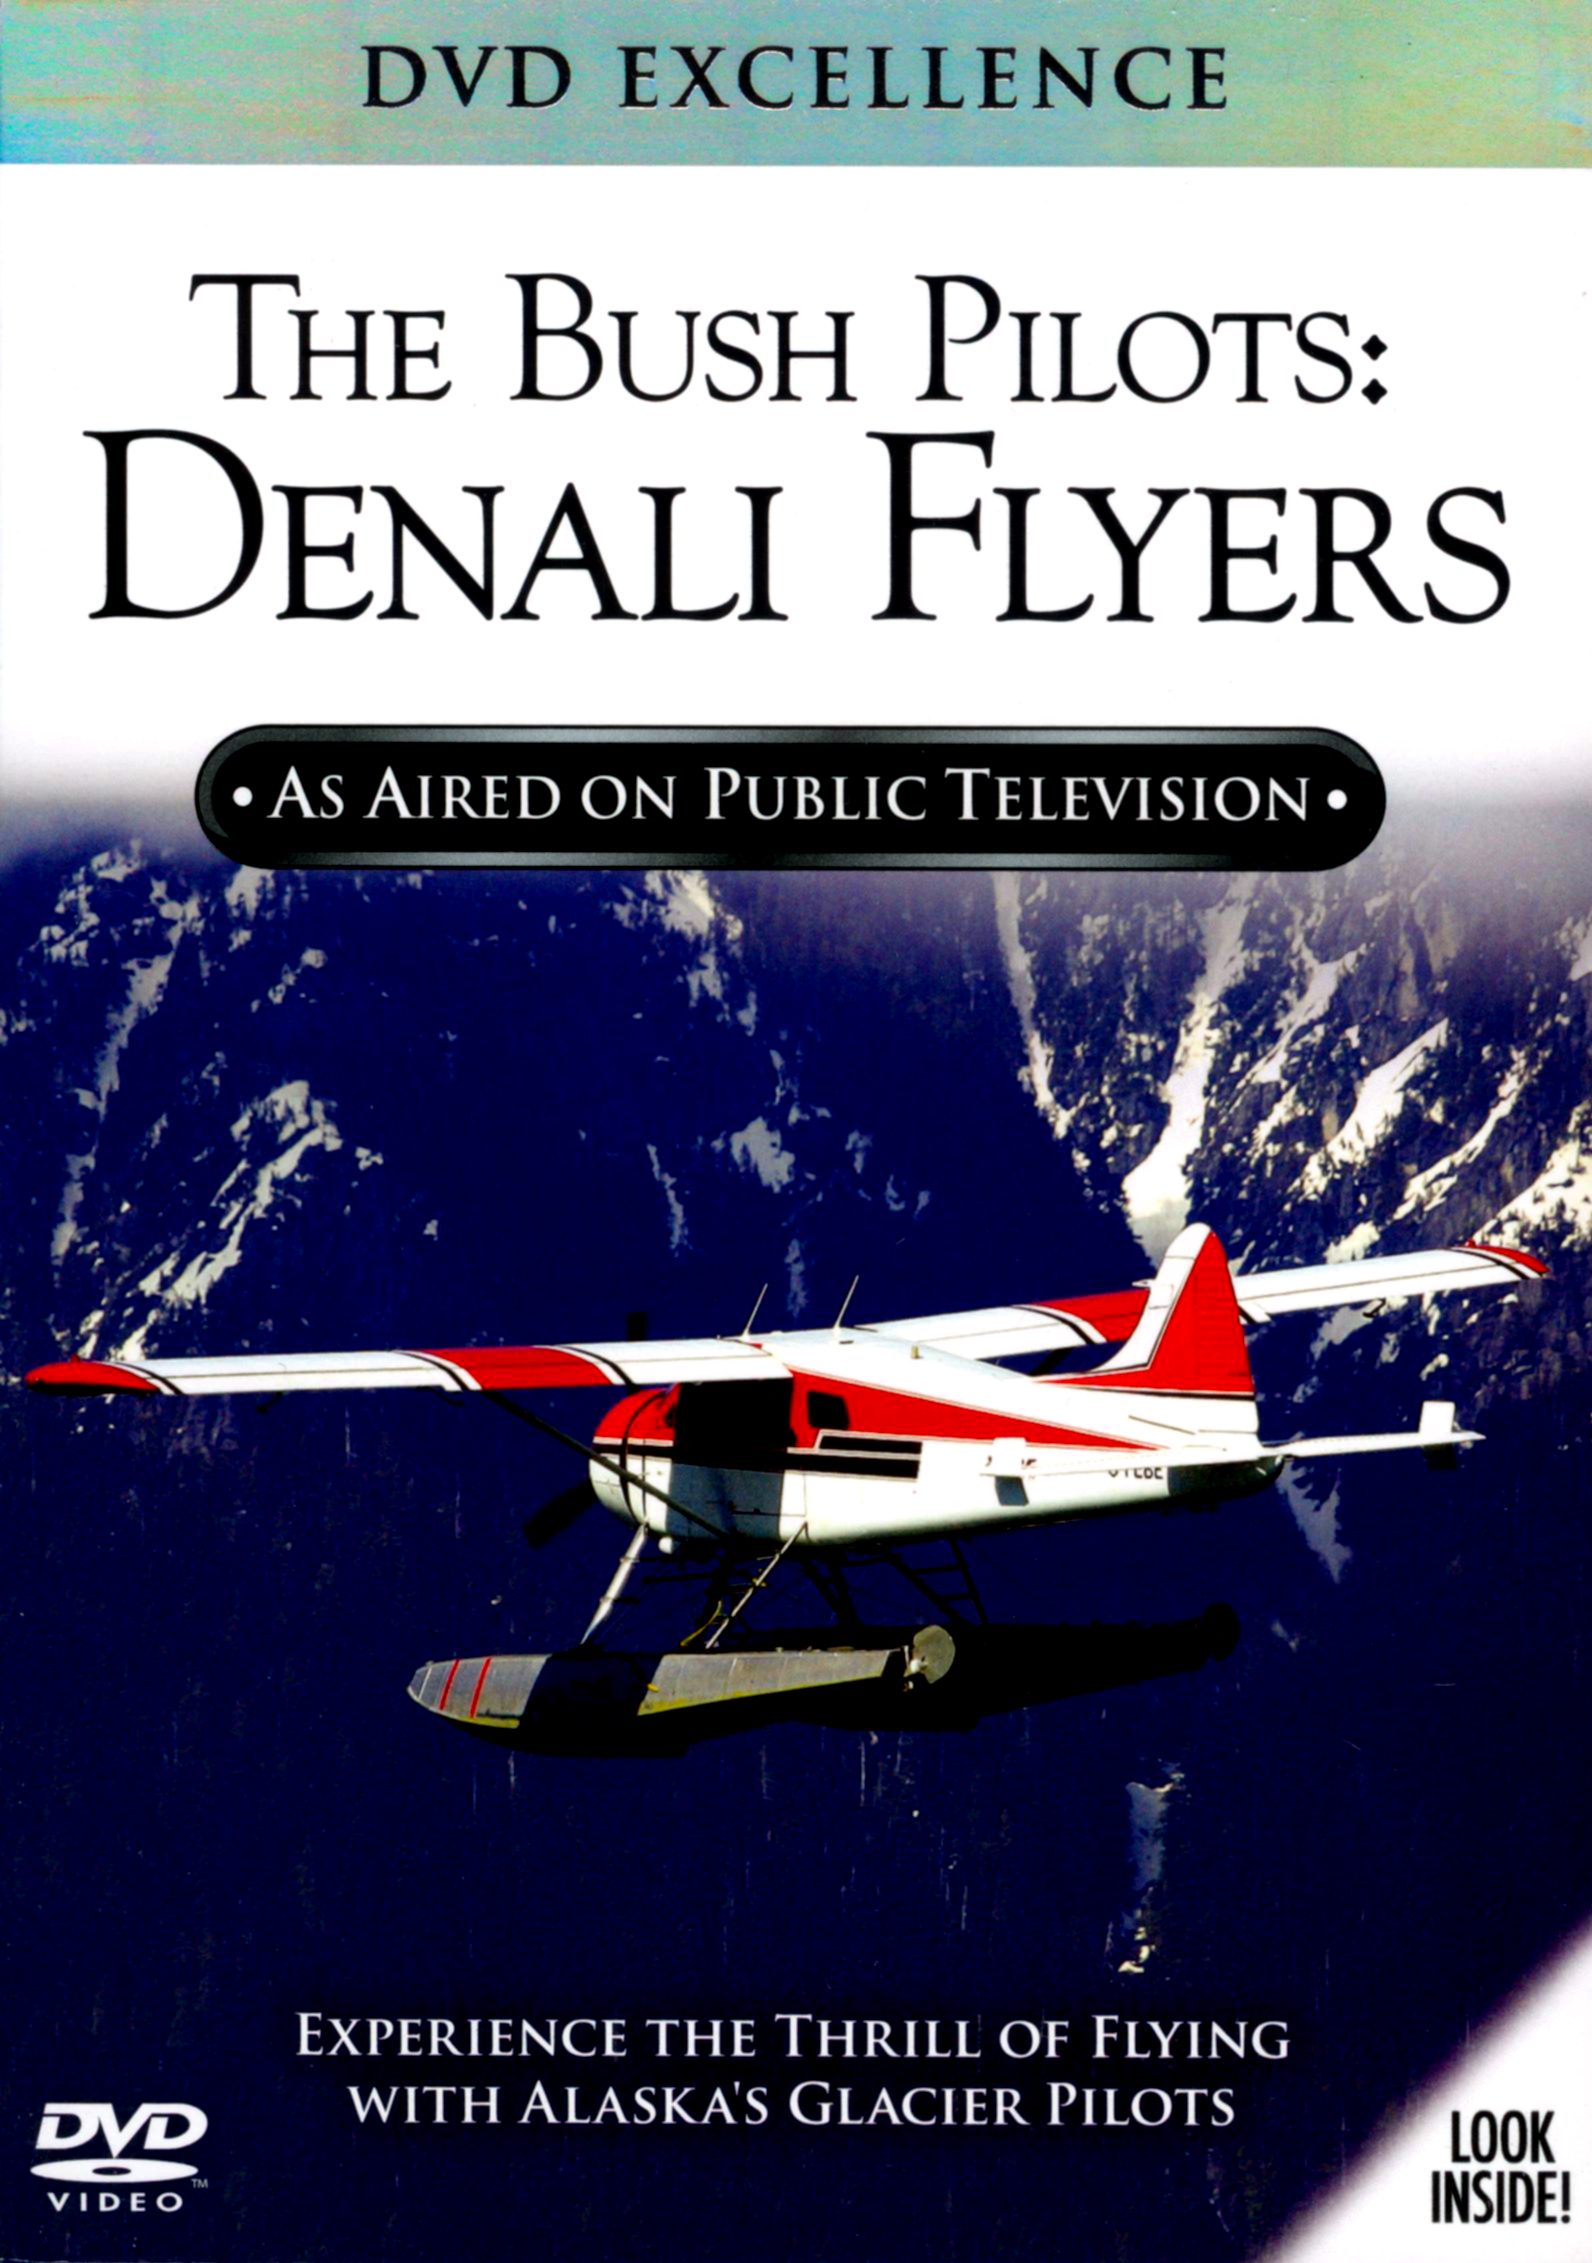 The Bush Pilots: Denali Flyers